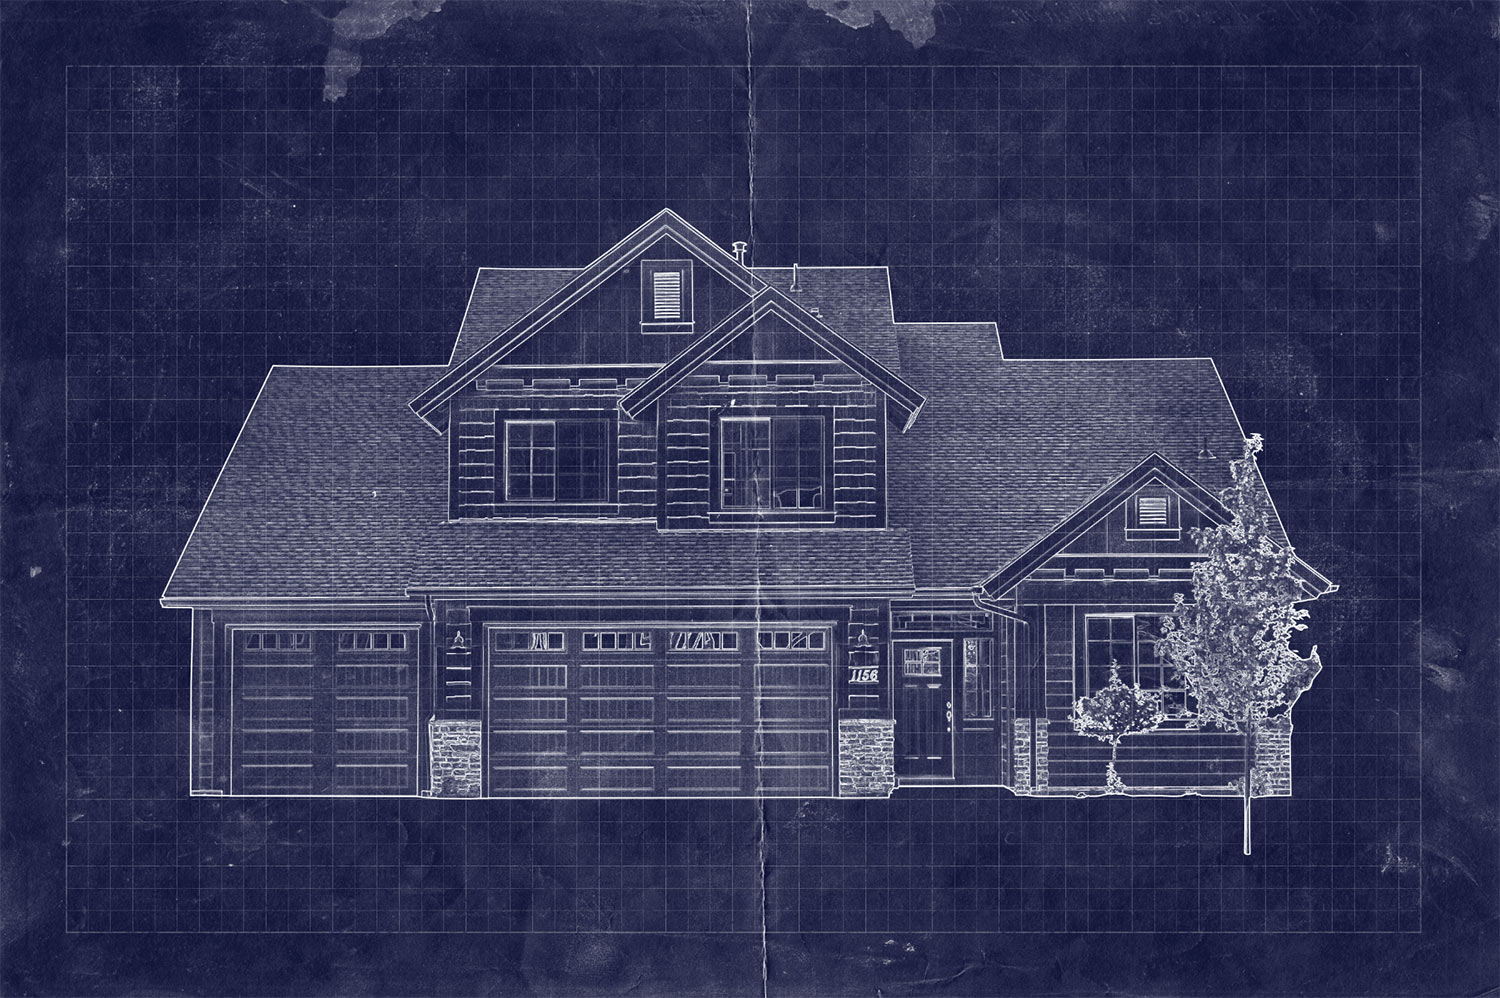 How to create a blueprint effect in adobe photoshop for House blueprint creator